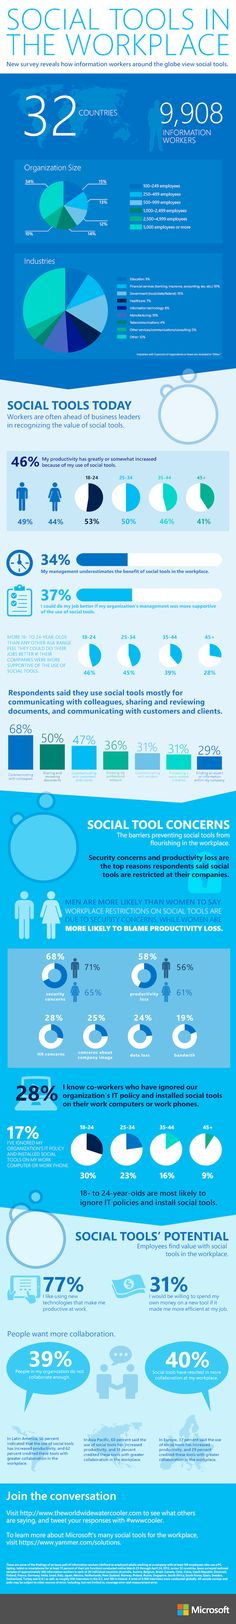 Women Collaborating With Social Media More Than Men [Infographic] – ReadWrite